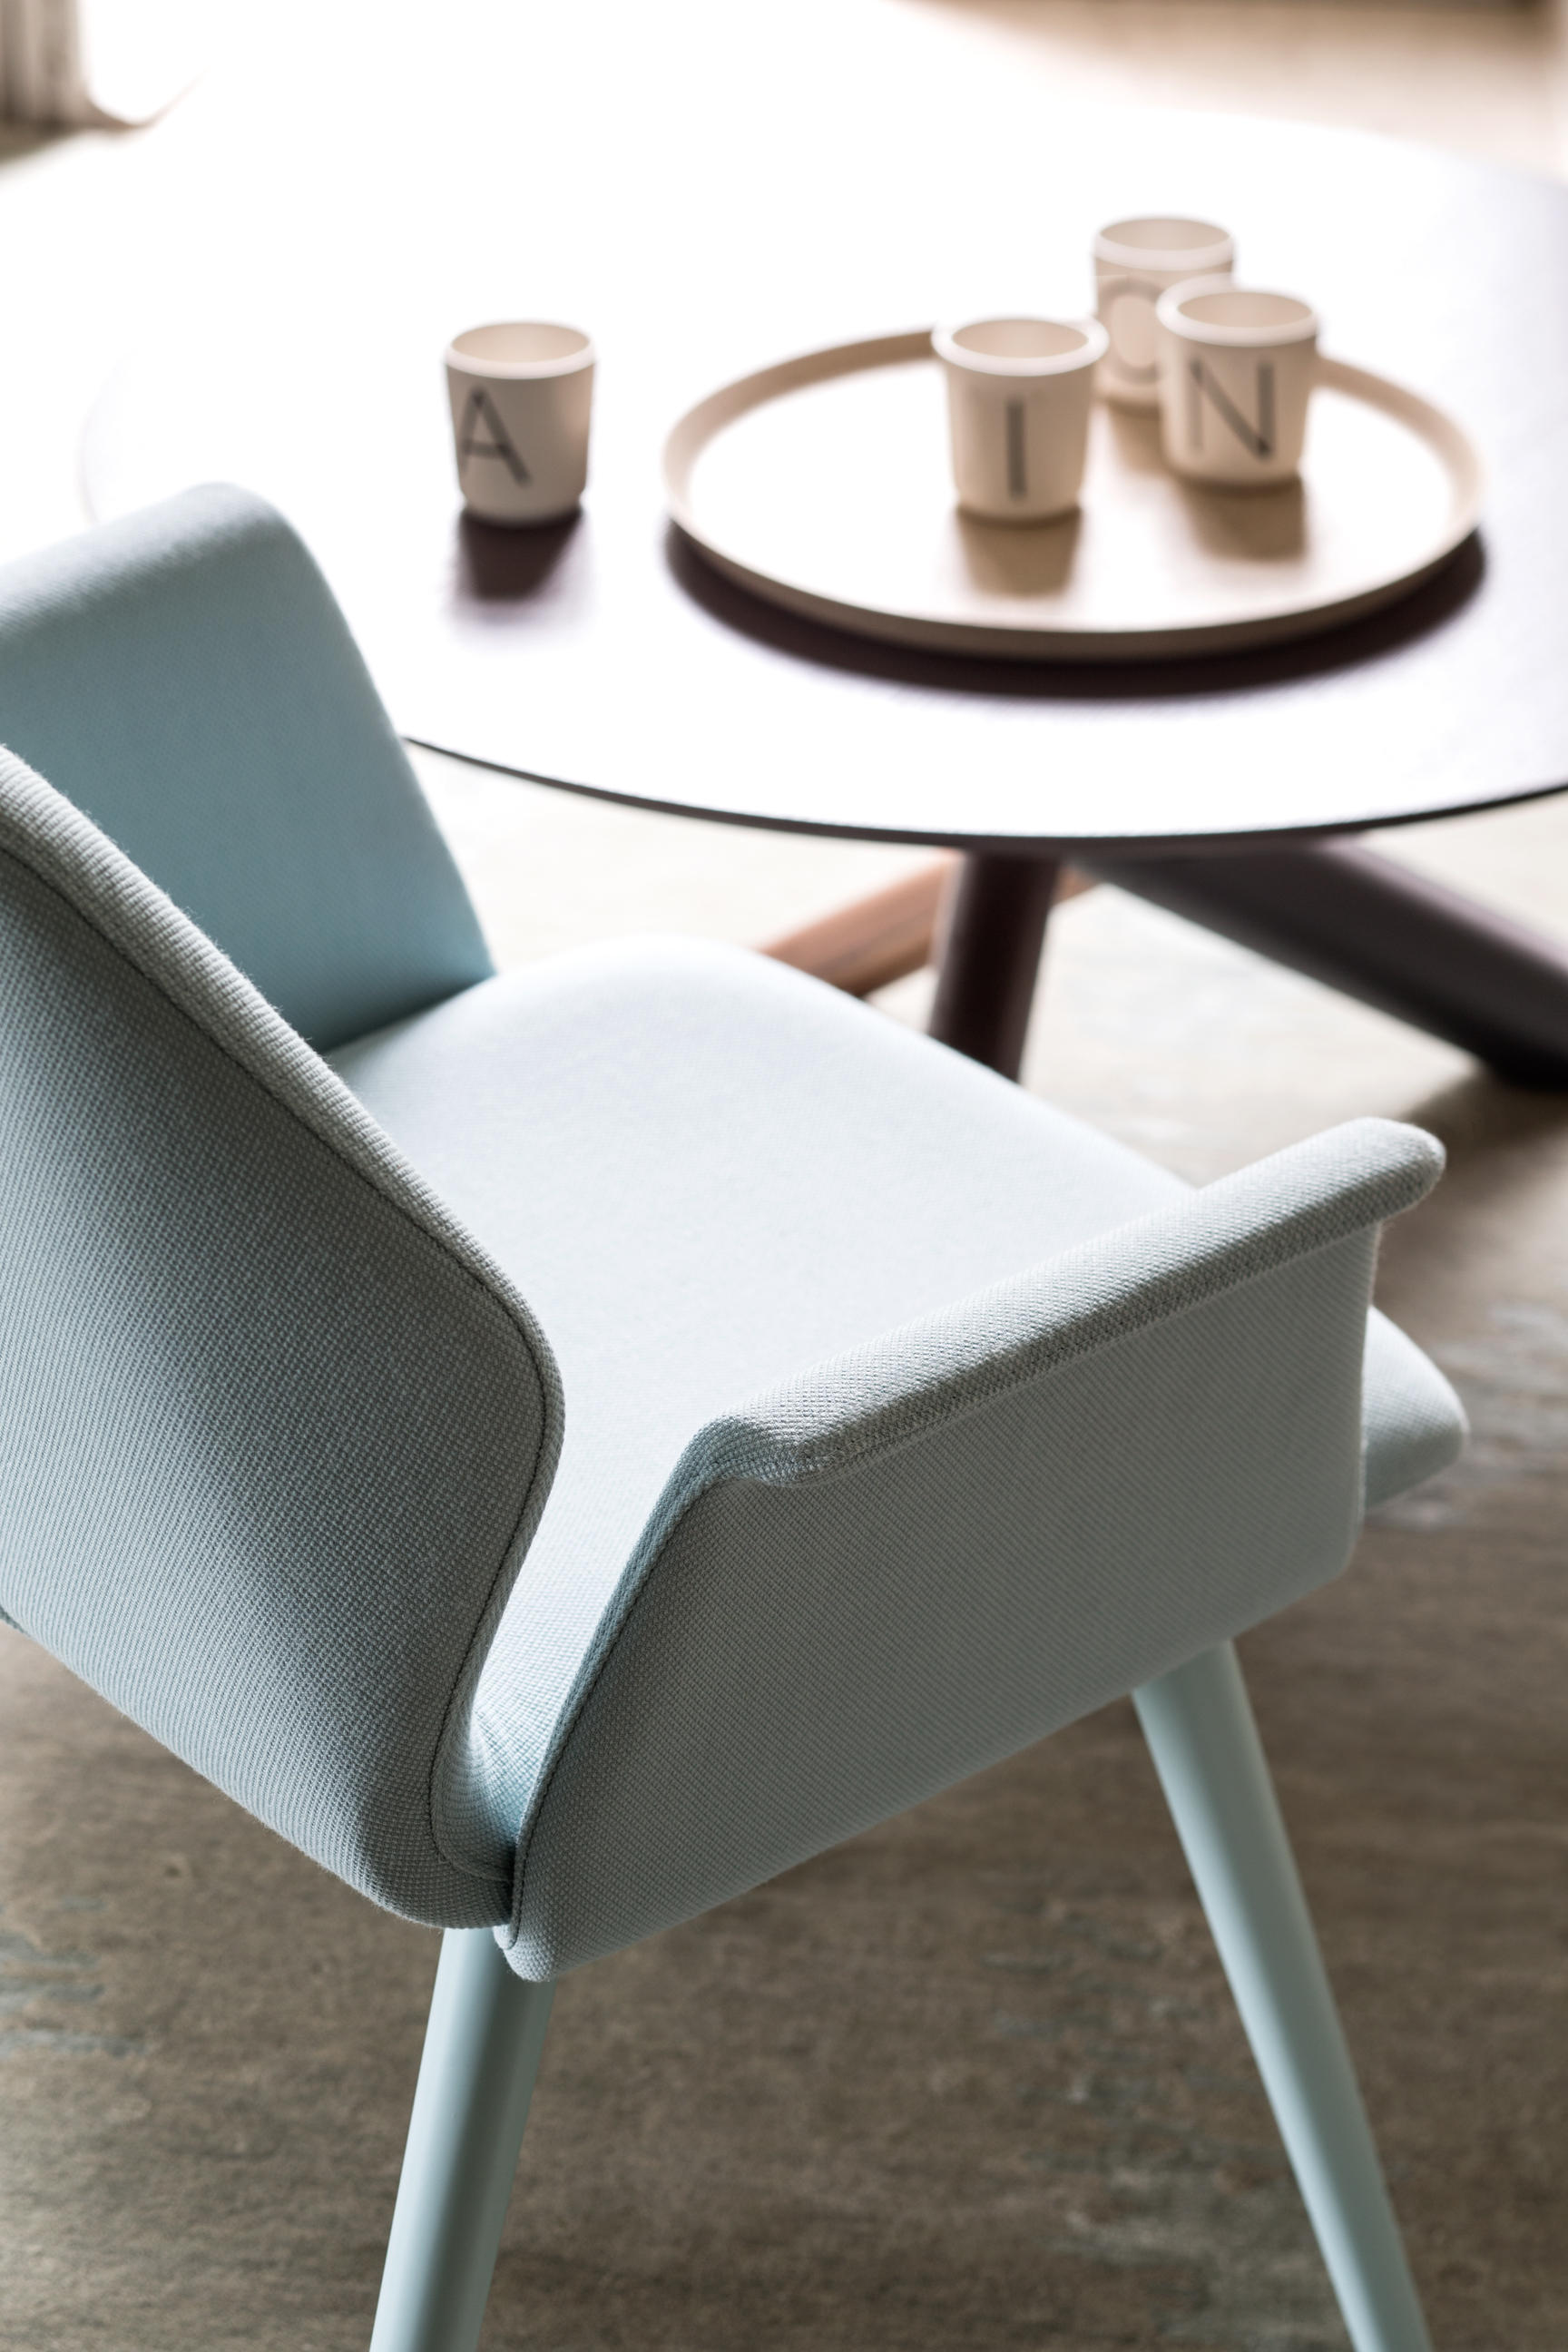 AVA CHAIR Restaurant chairs from Bross